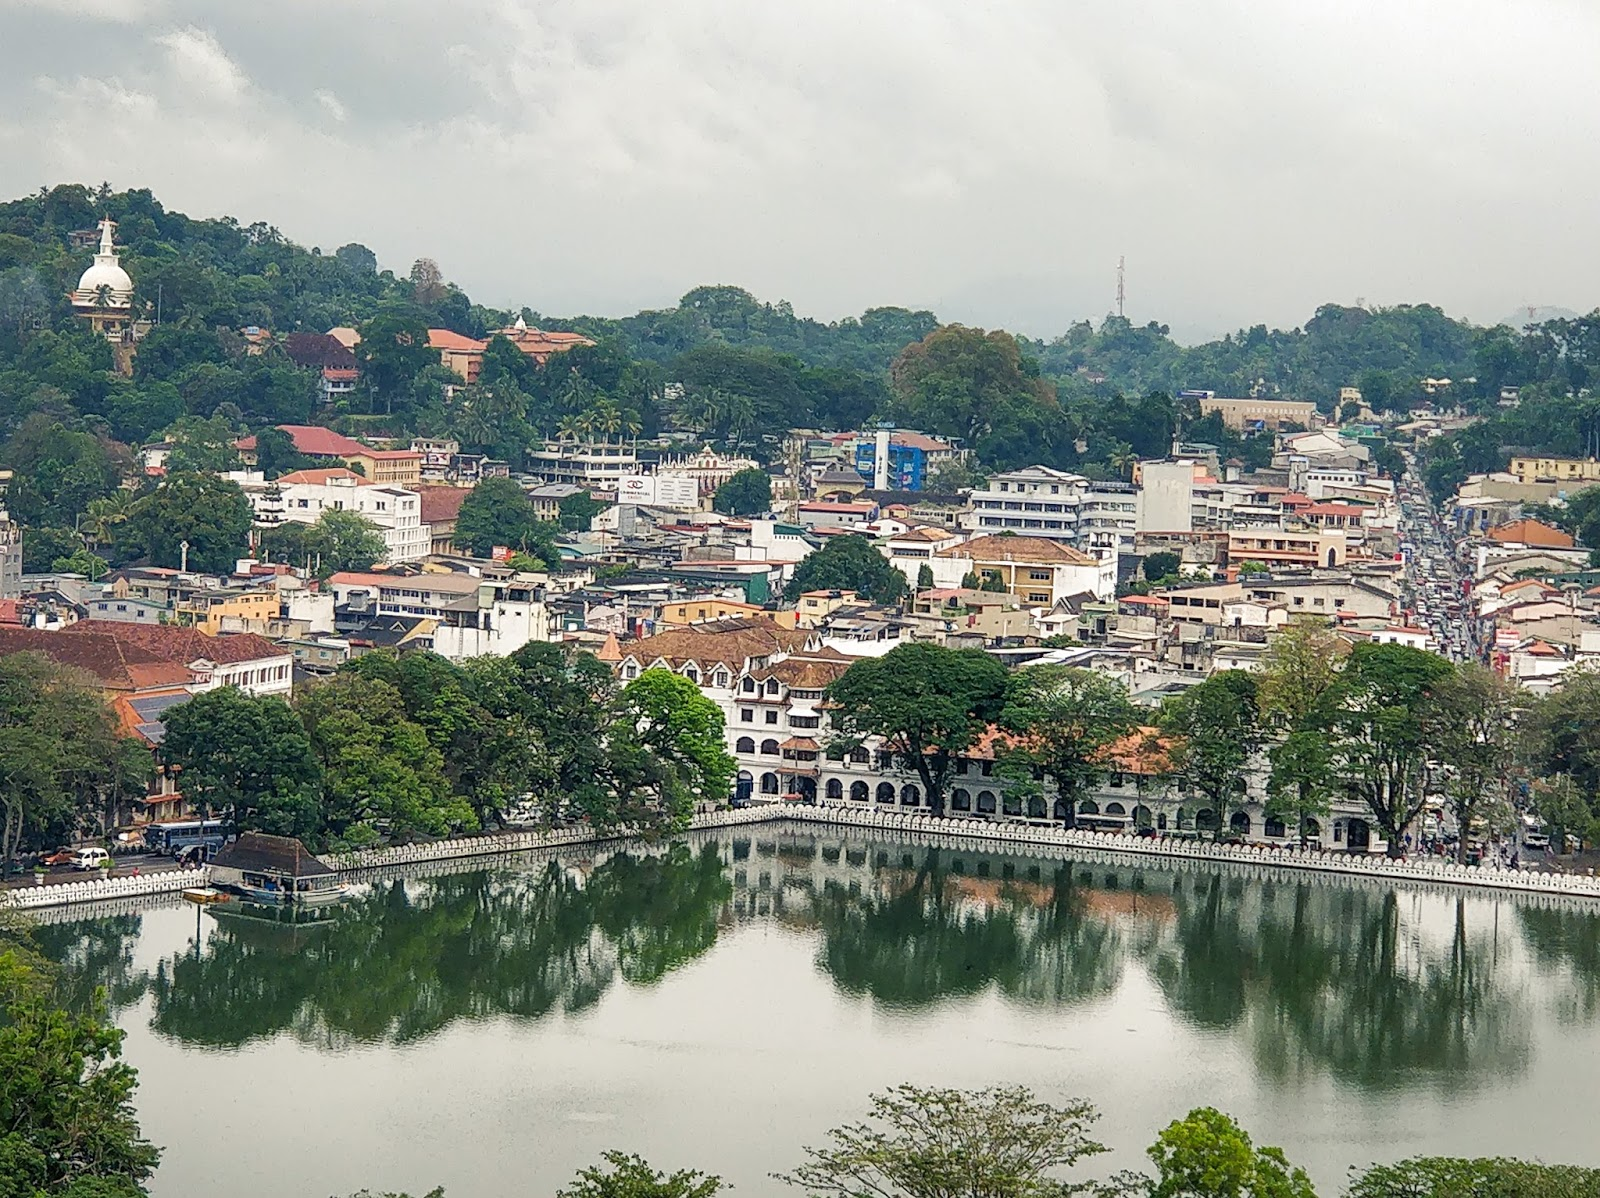 Kandy Lake as seen from the Upper Lake Drive, Kandy, Sri Lanka